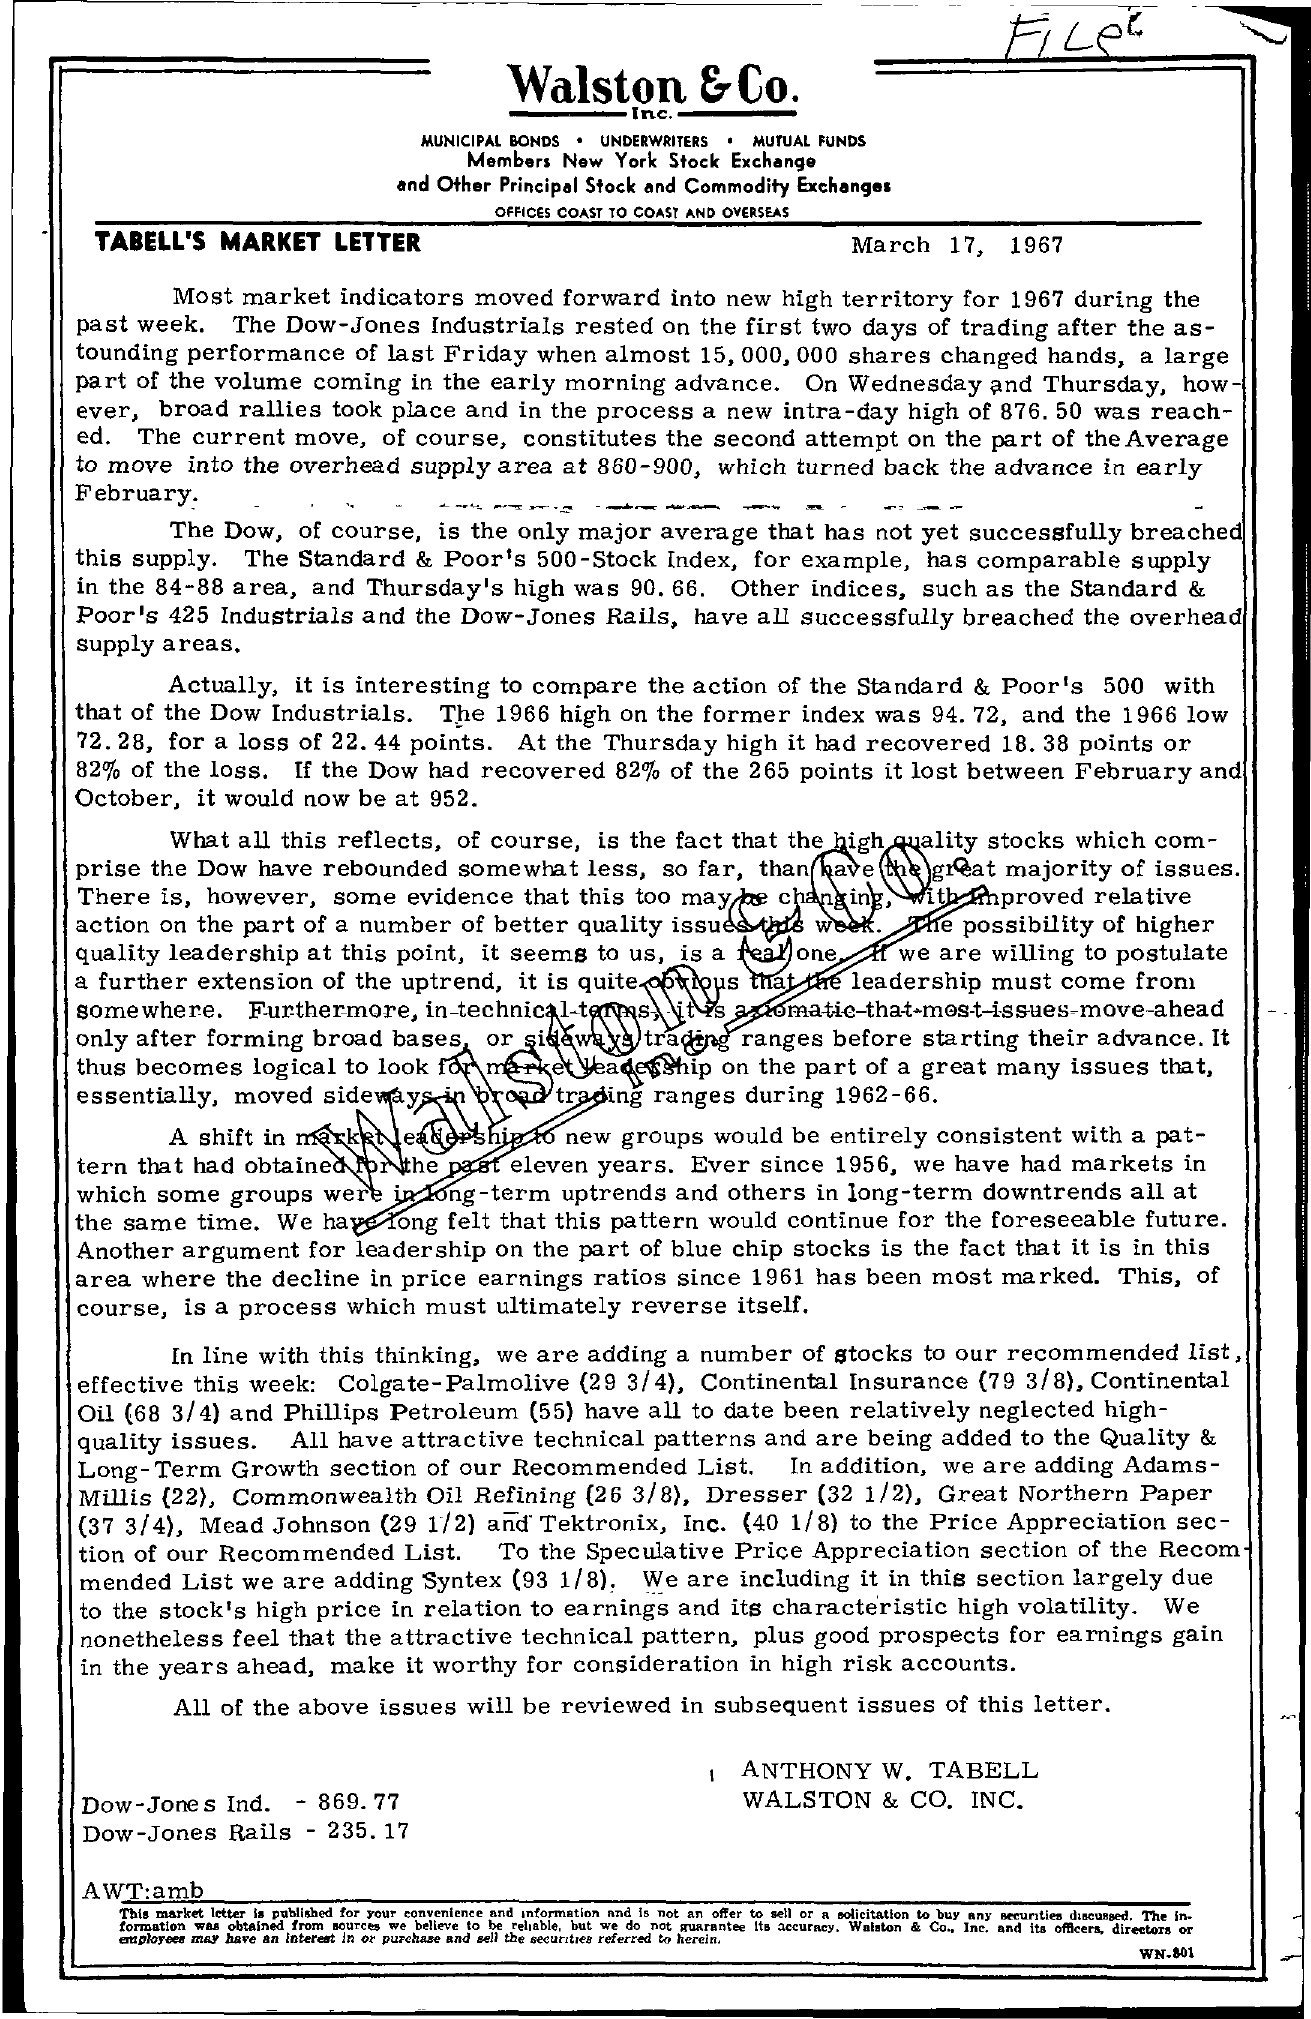 Tabell's Market Letter - March 17, 1967